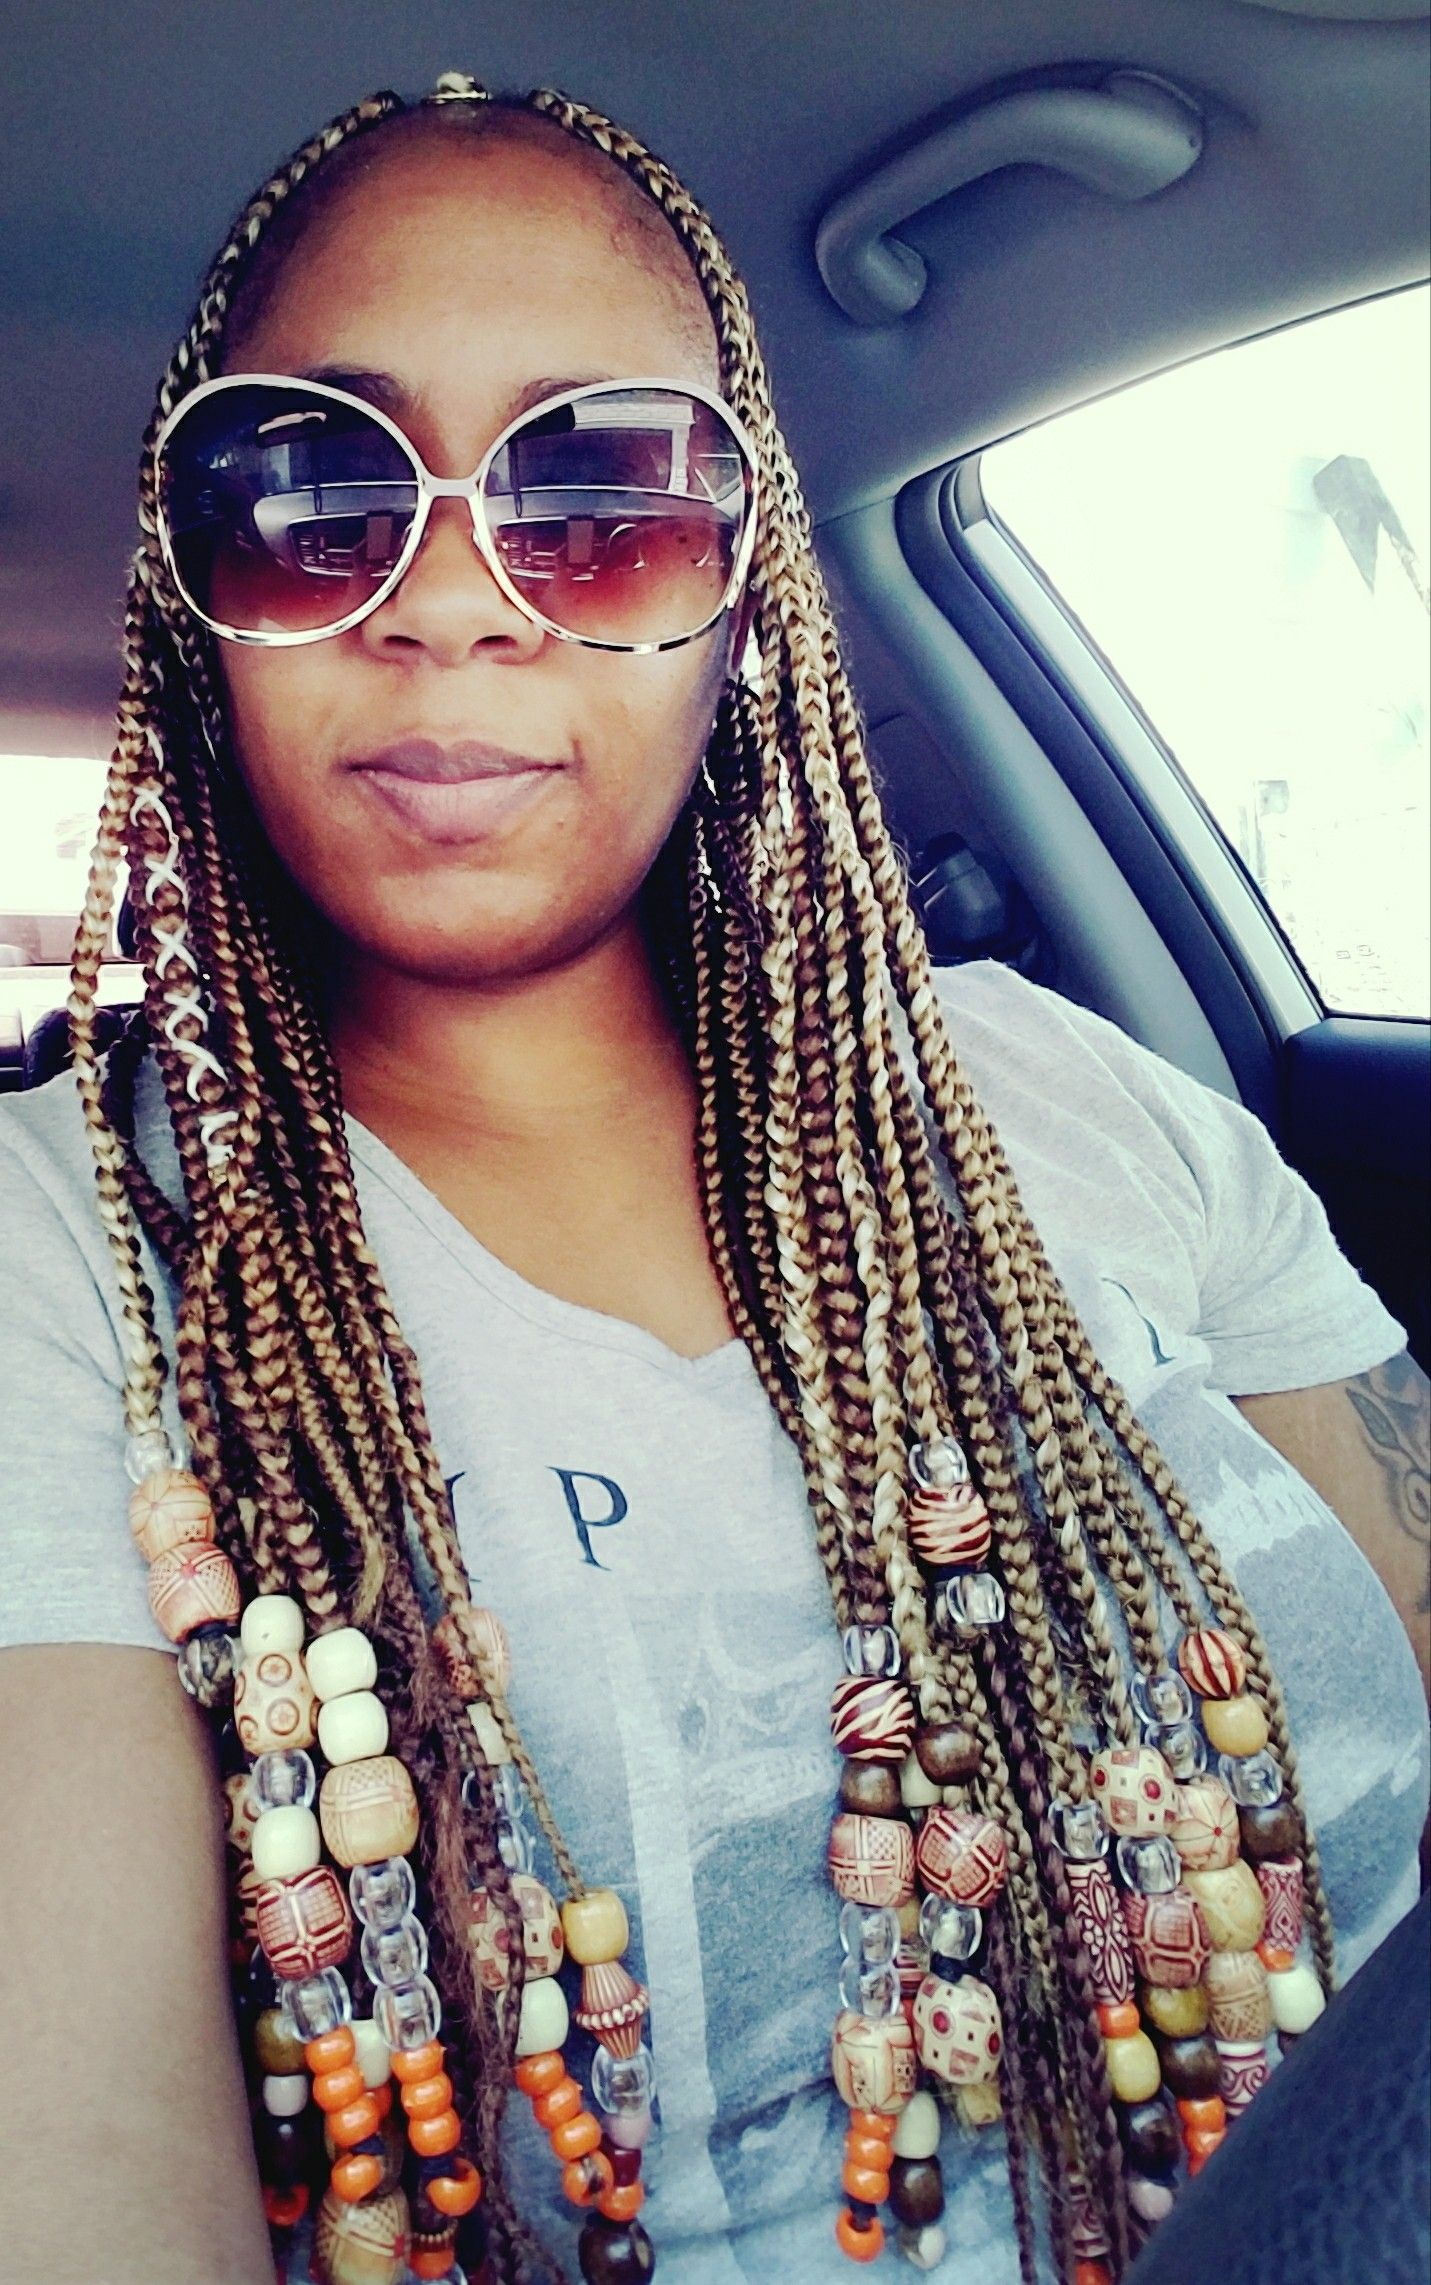 A Summer Look Of Beautiful African Tribal Braids Beads Braids With Beads Fashion Summer Looks